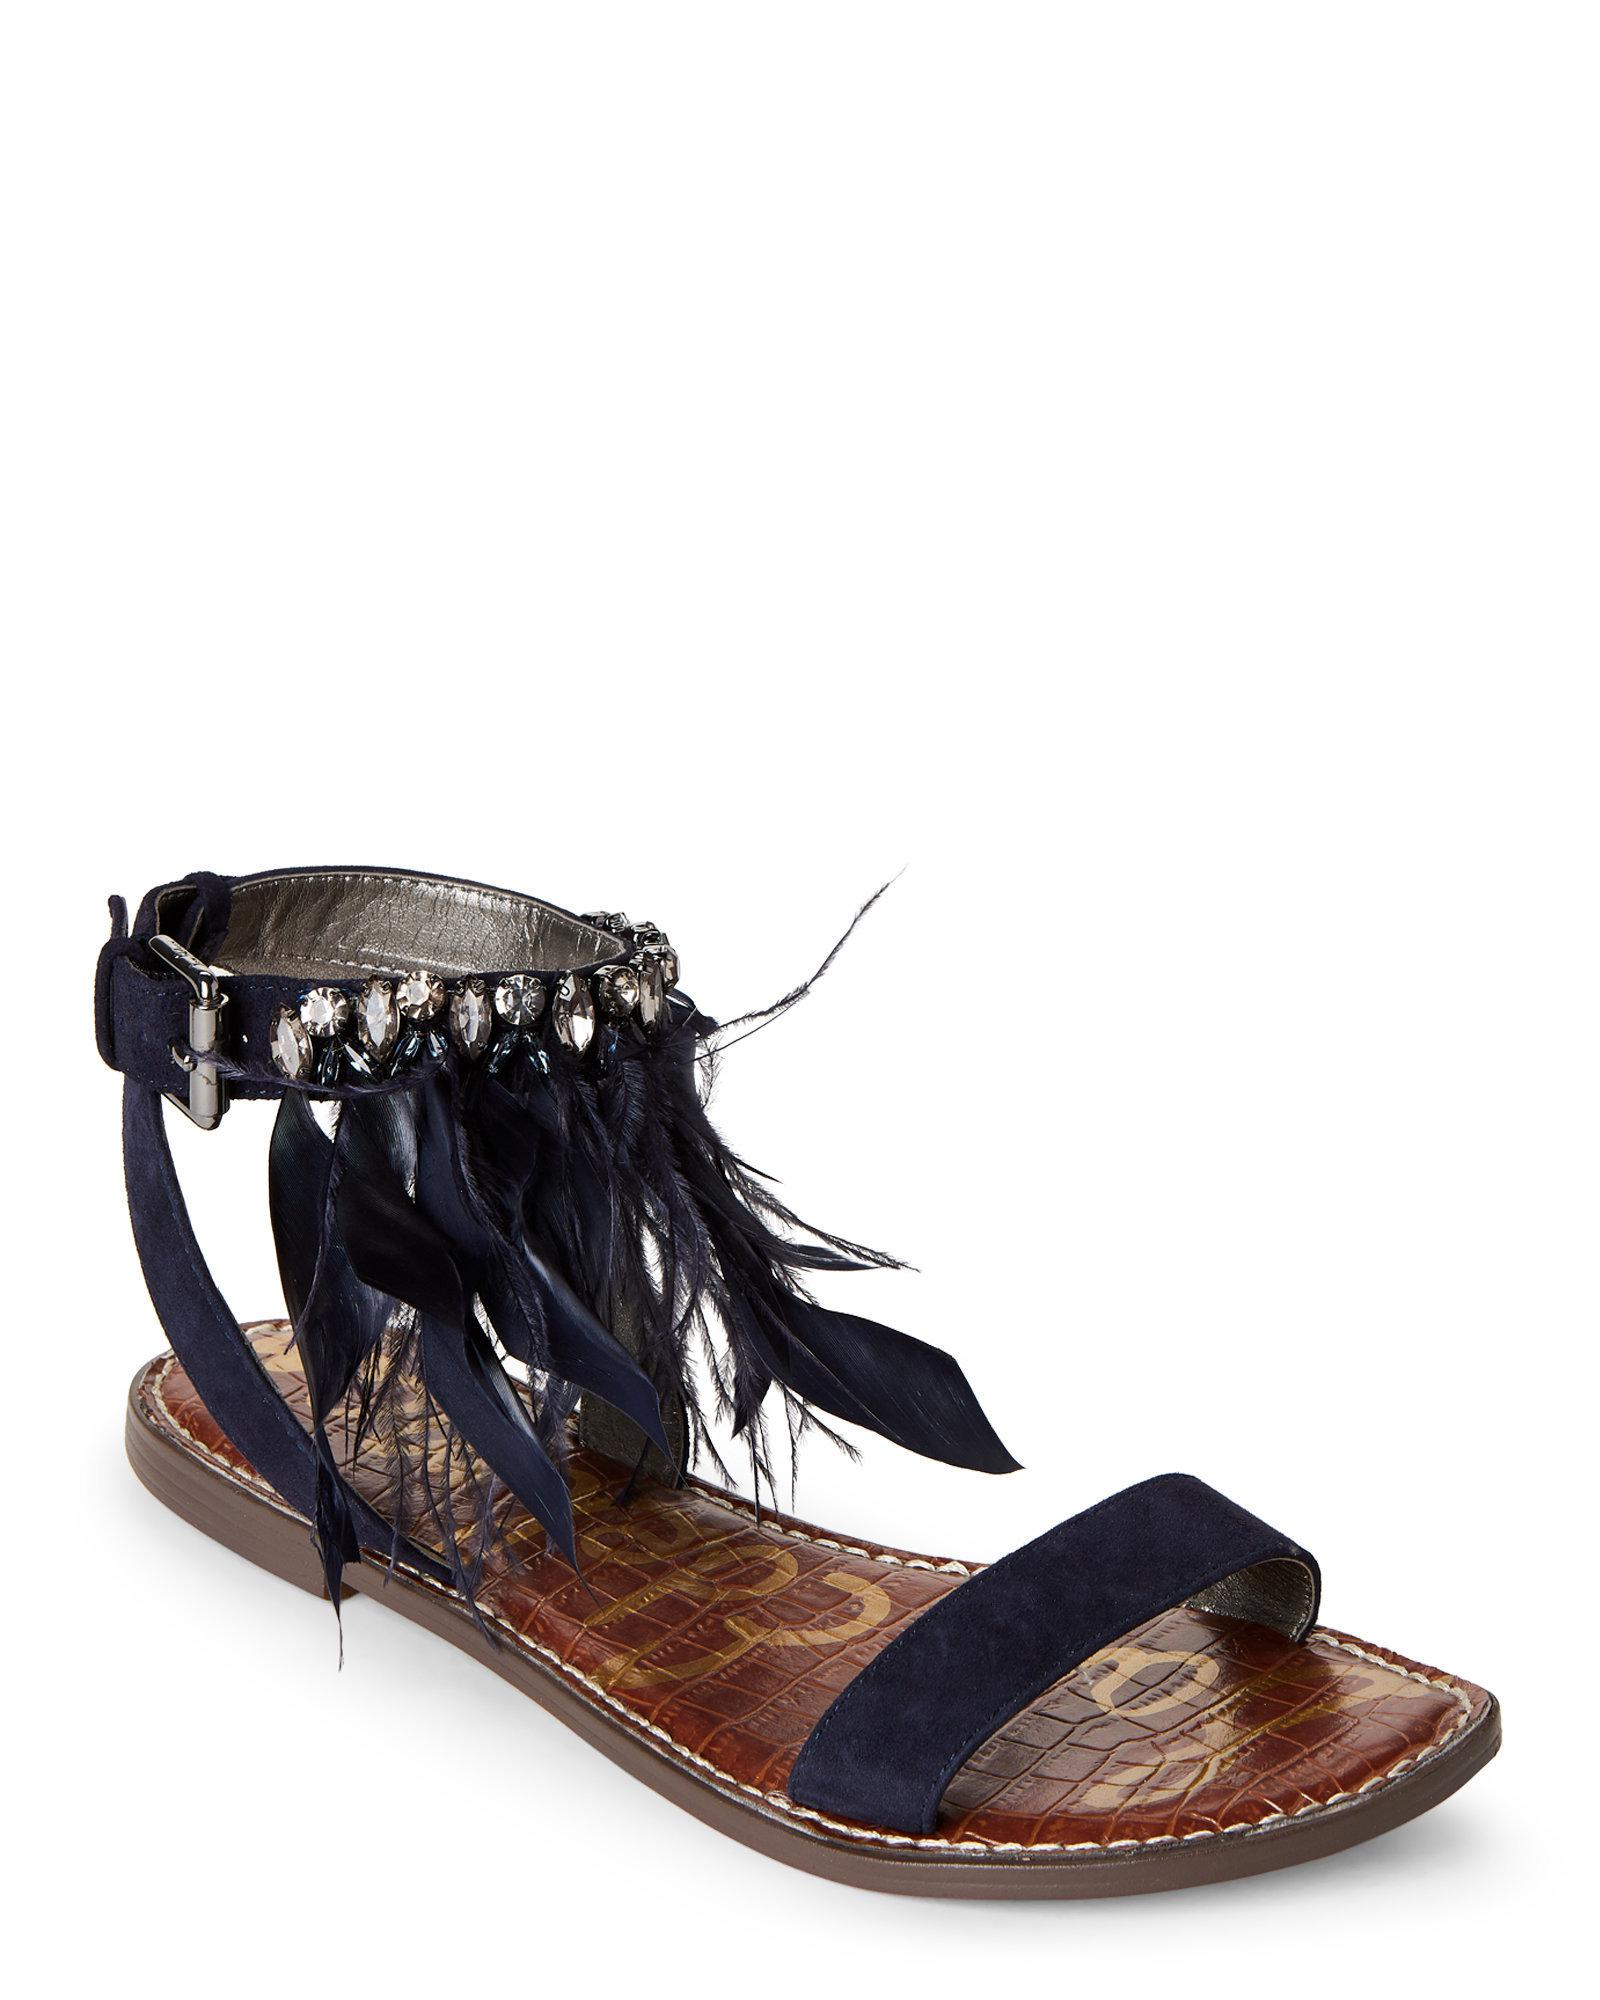 a57a15cf0 Lyst - Sam Edelman Navy Genevia Embellished Flat Sandals in Blue